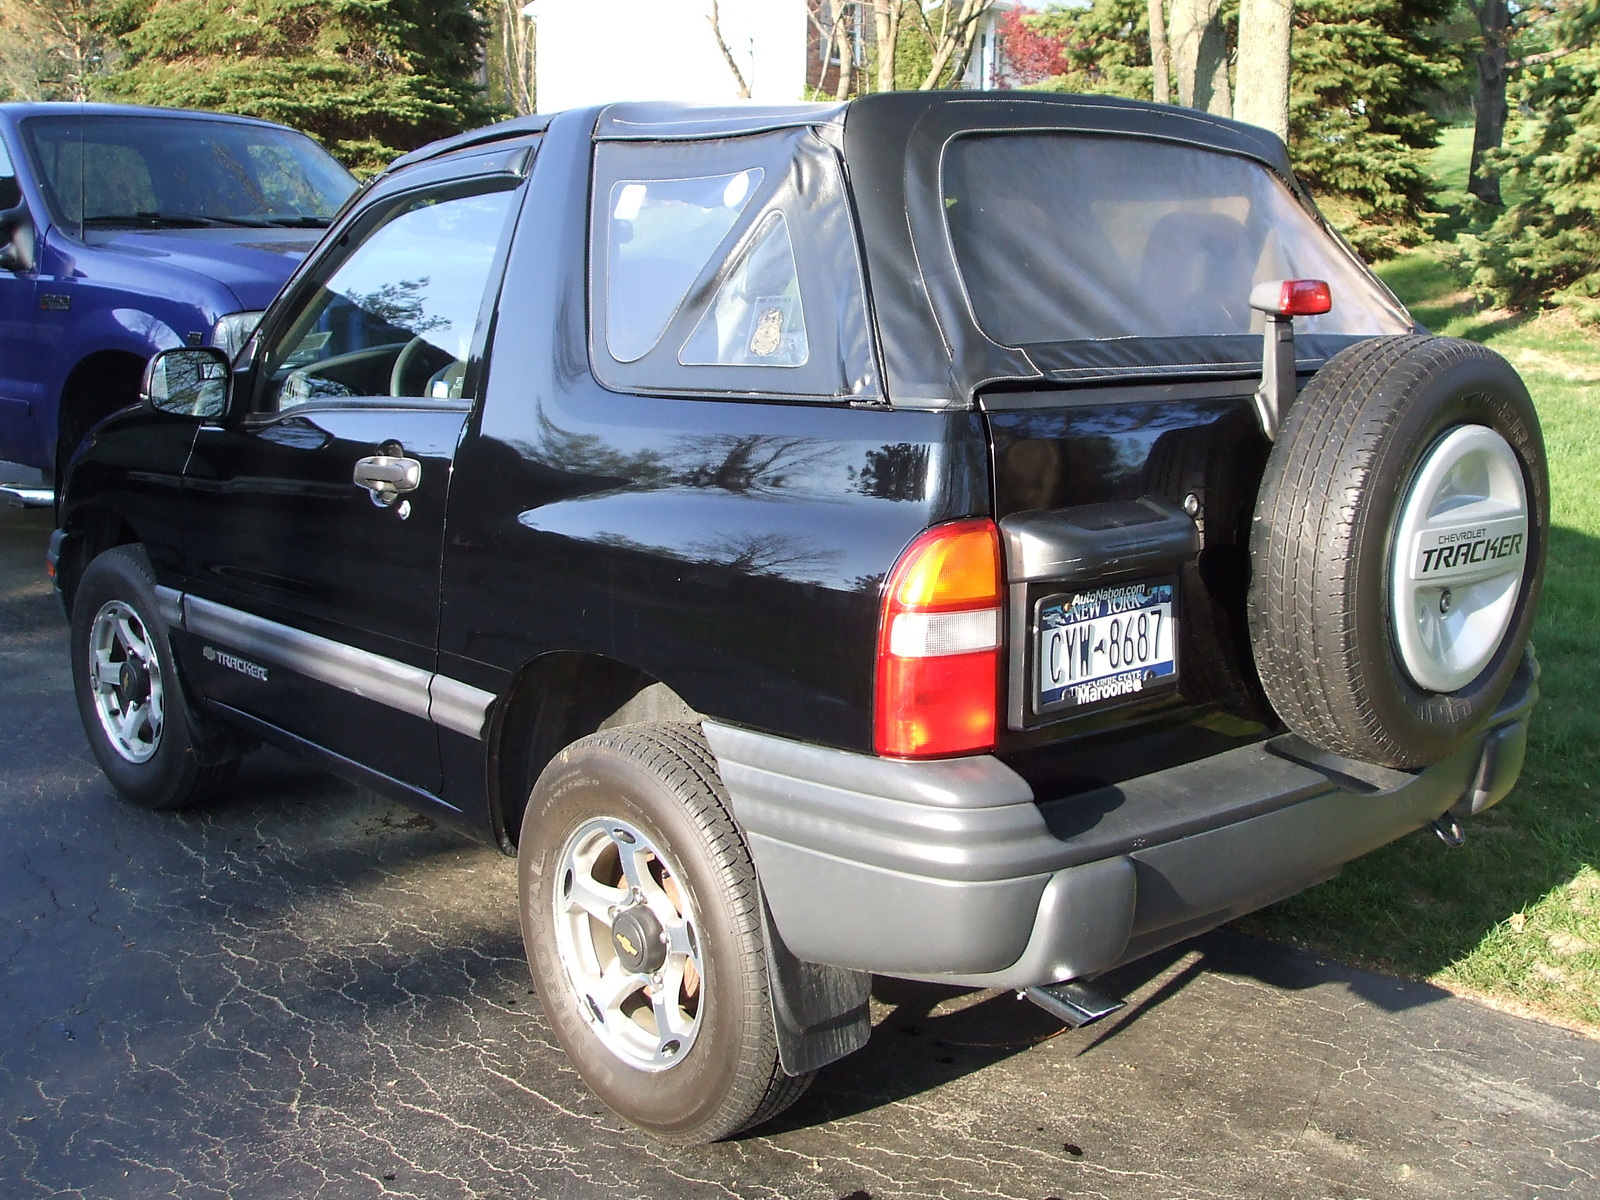 ... 02/25/00/44/2000_chevrolet_tracker_base_4wd_convertible-pic-44001.jpeg